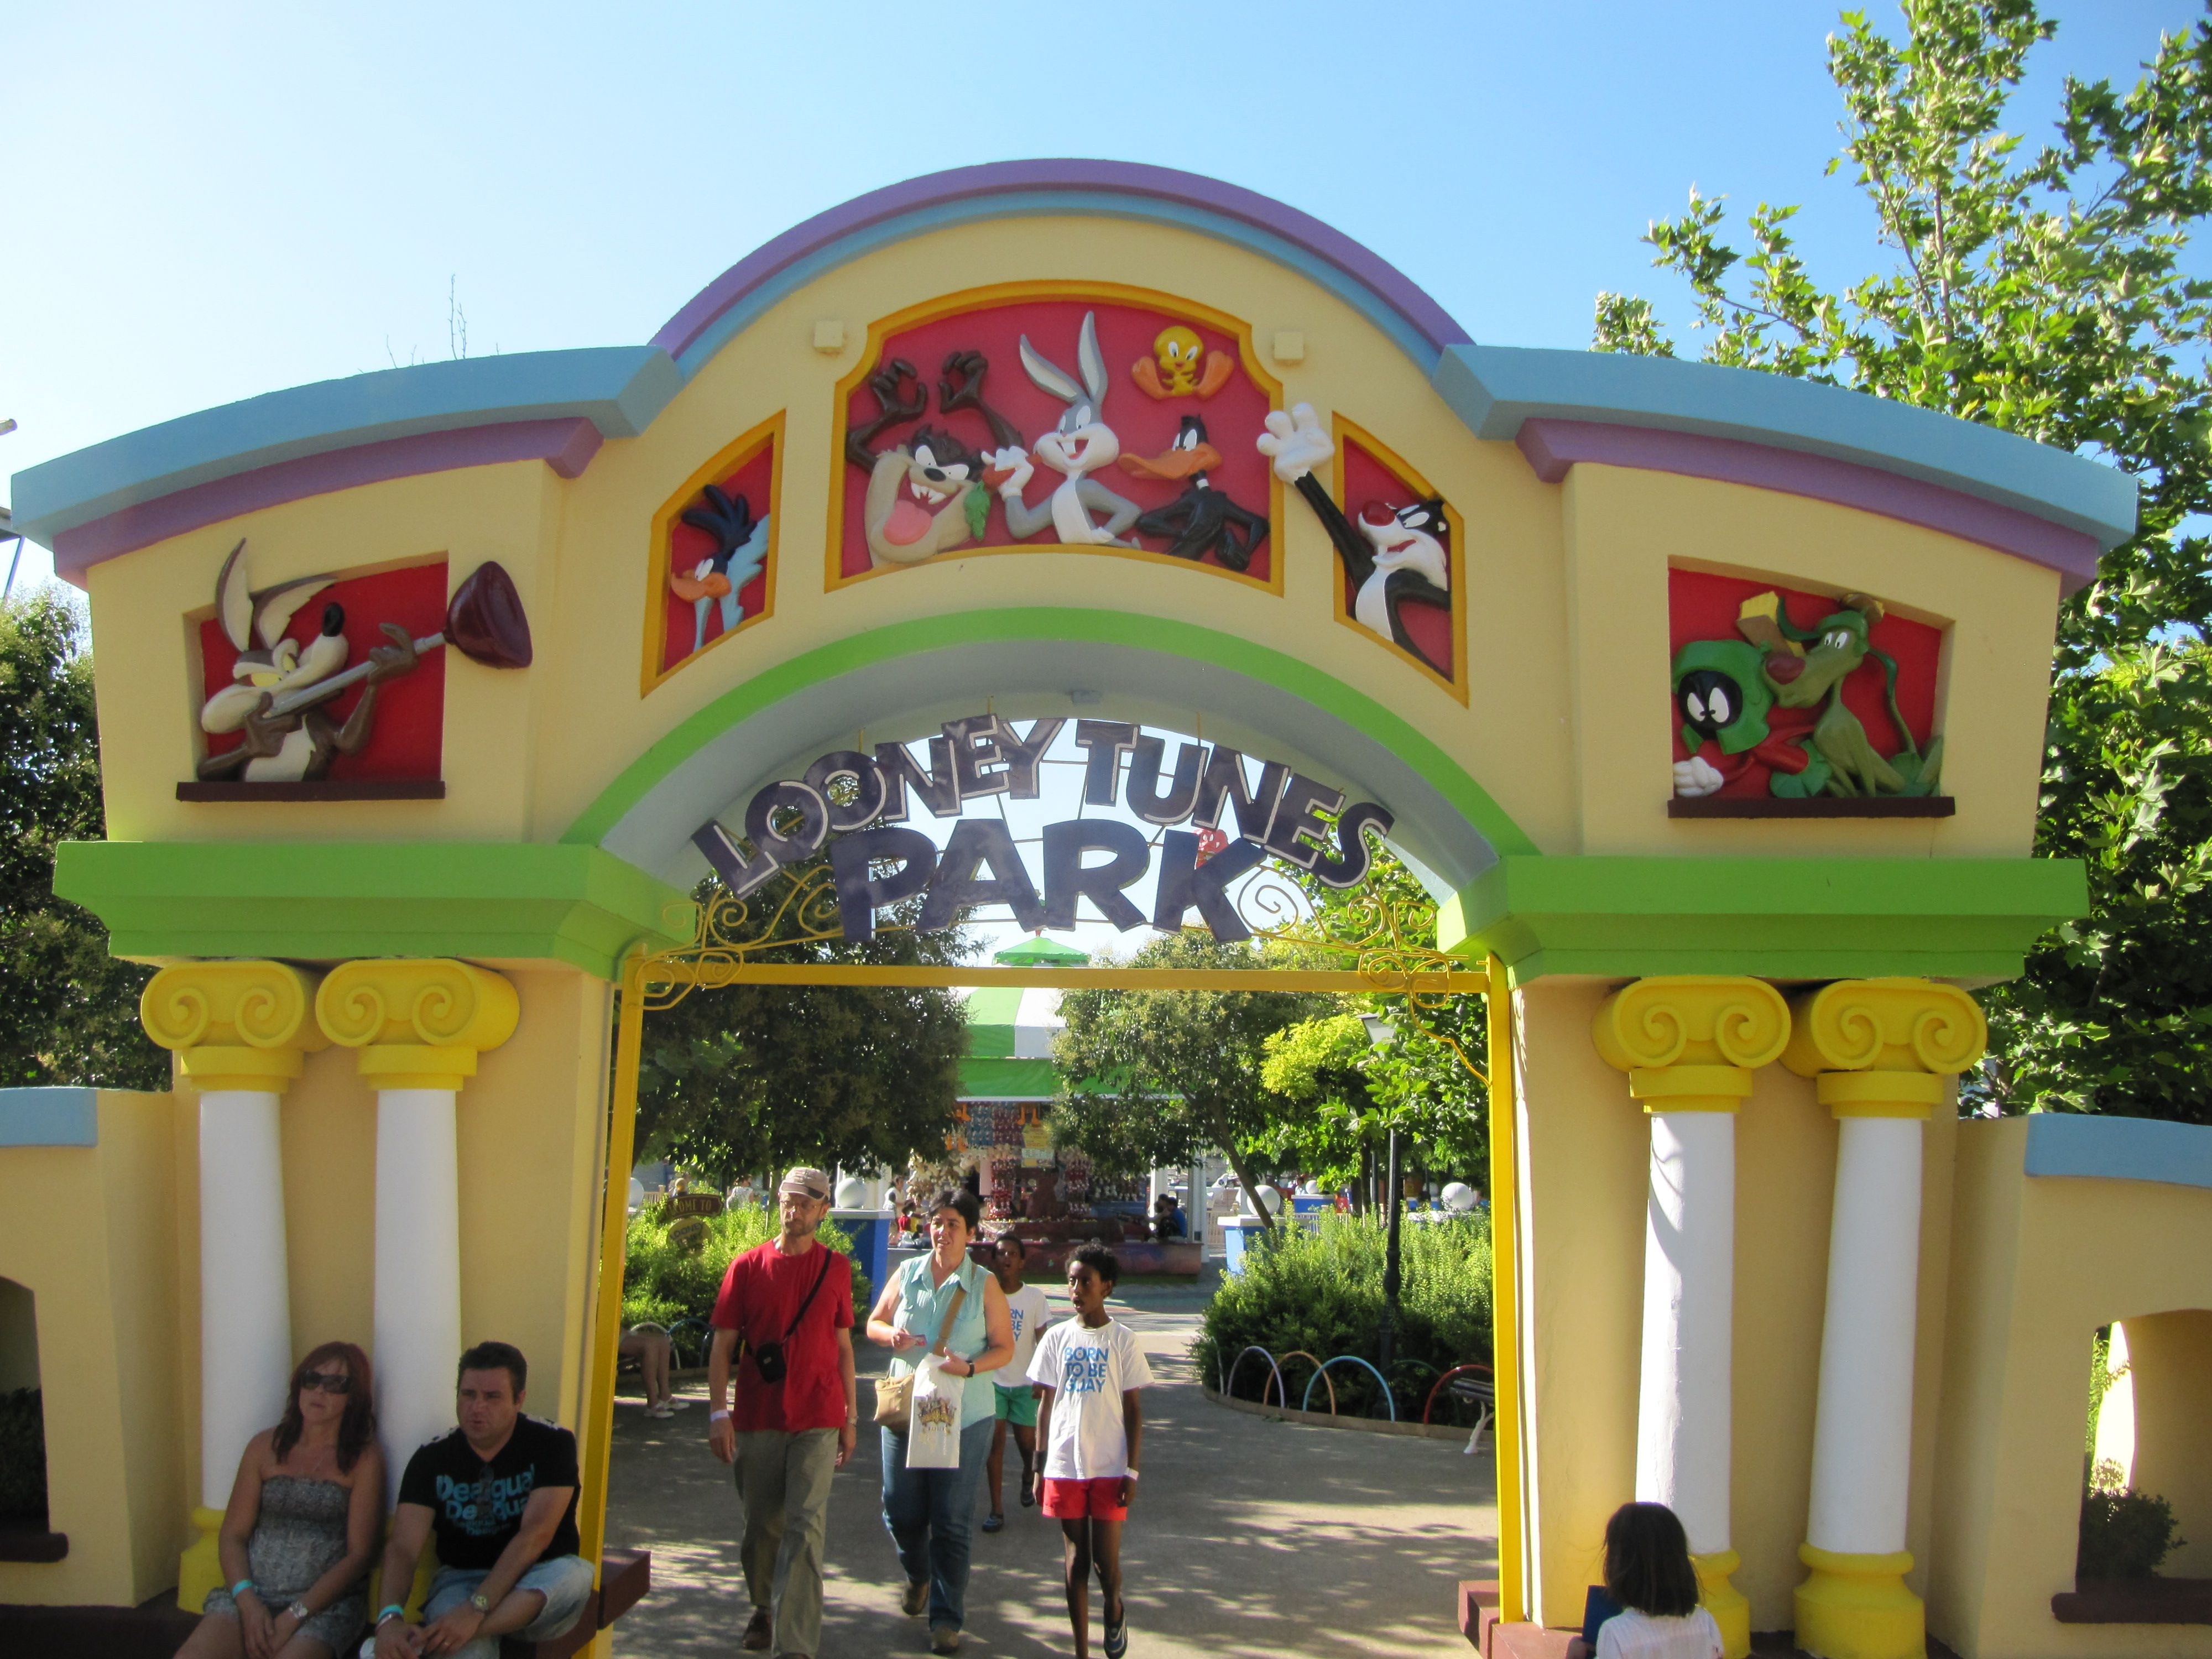 The Kids Zone In Parque Warner Madrid The Area Themed In A Popular Characters Of Warner Bros Same As Looney Tun Kids Zone Hanna Barbera Characters Theme Park